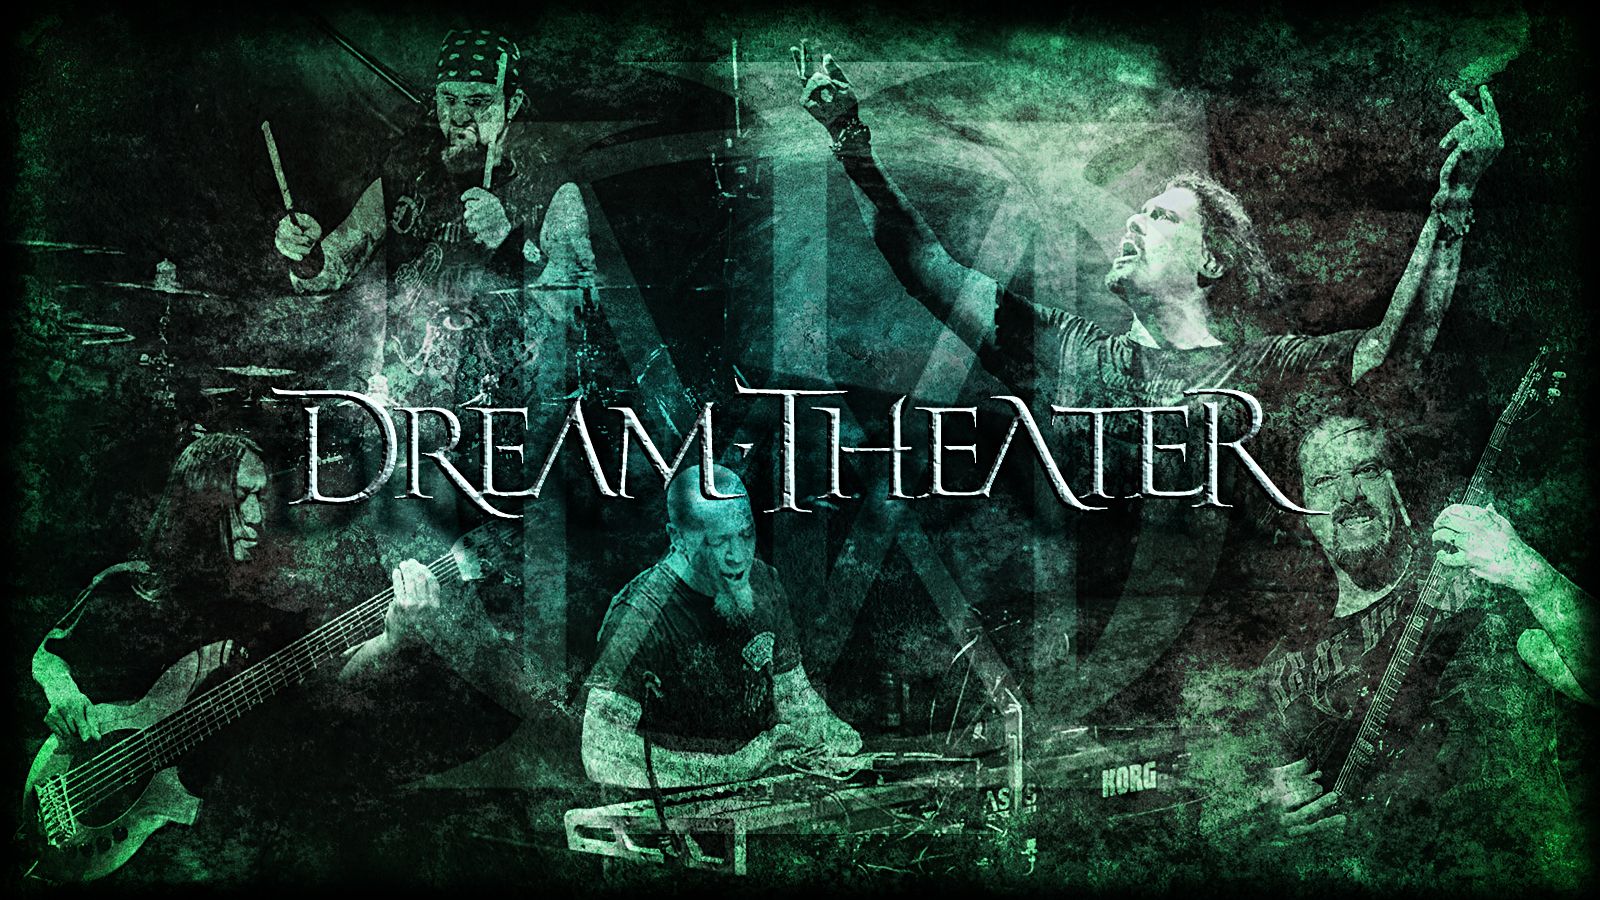 http://1.bp.blogspot.com/-WPecquVg-S0/T--rsXCWBDI/AAAAAAAAASI/x5O6fHjJuG8/s1600/dream_theater_wallpaper_i_by_steve1969.jpg